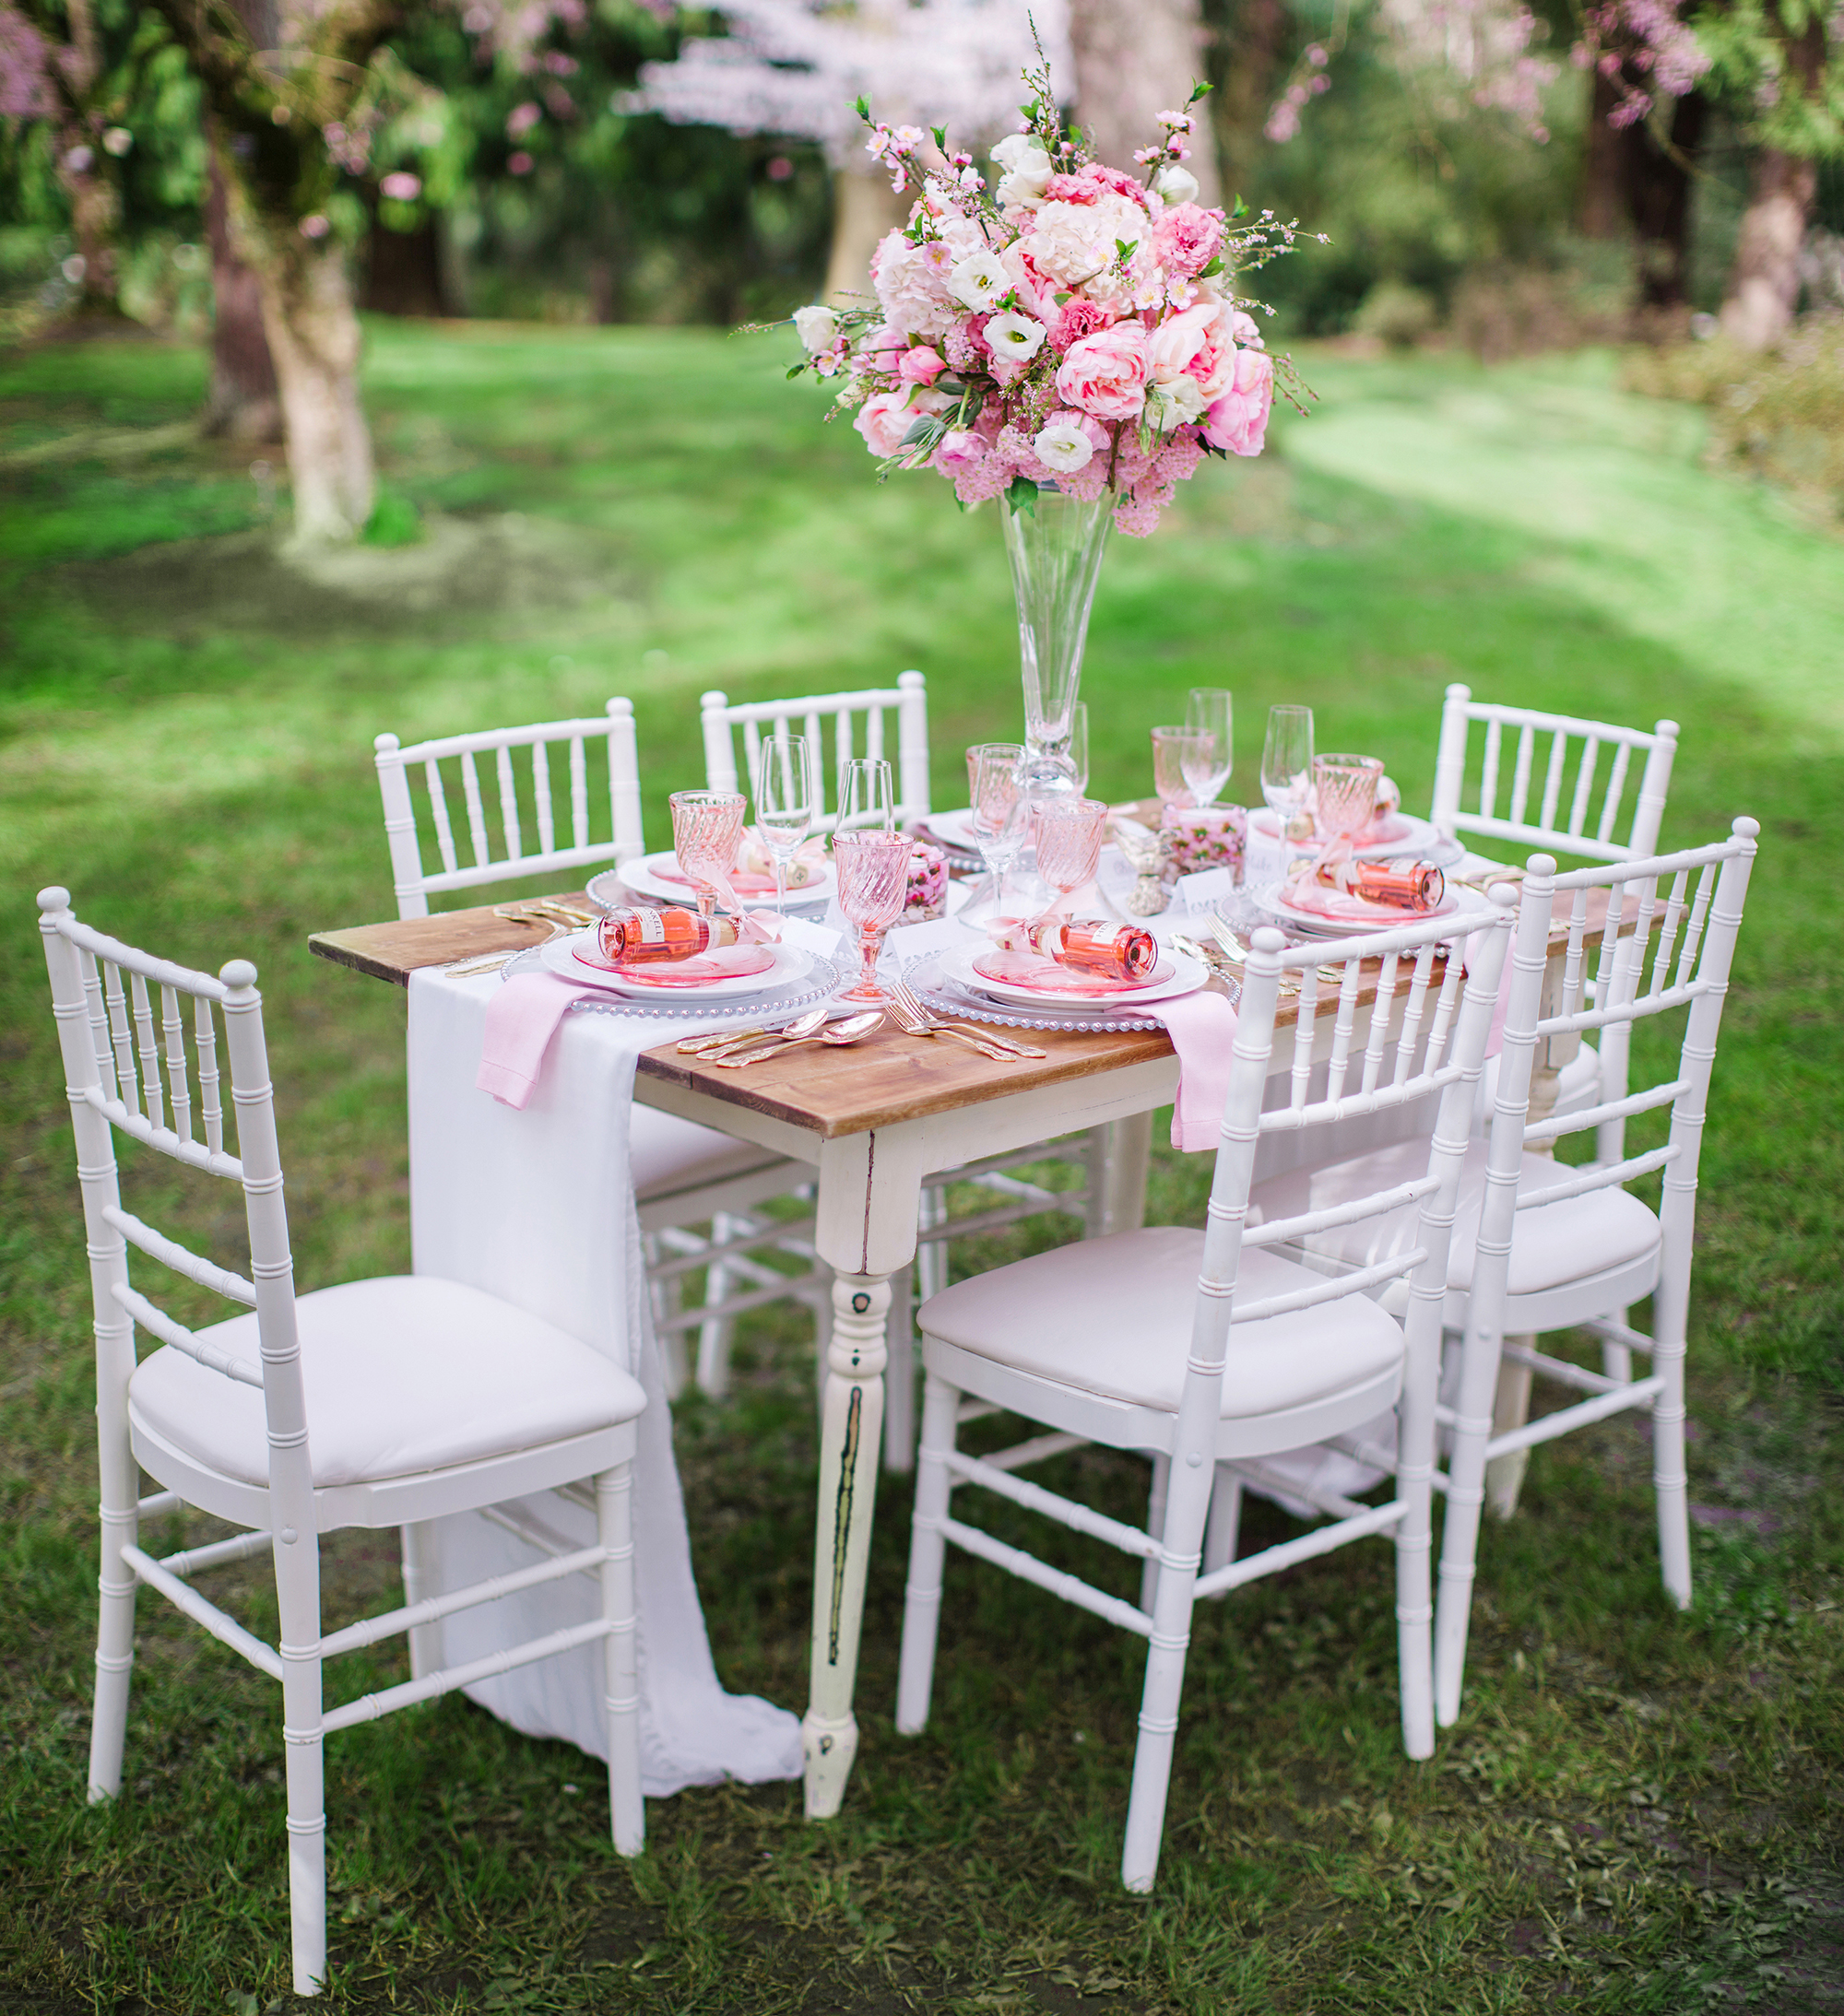 chair cover rentals langley hospital chairs that convert to beds vintage vancouver surrey past pieces vintge fraser valley abbotsford wedding coordinator antique